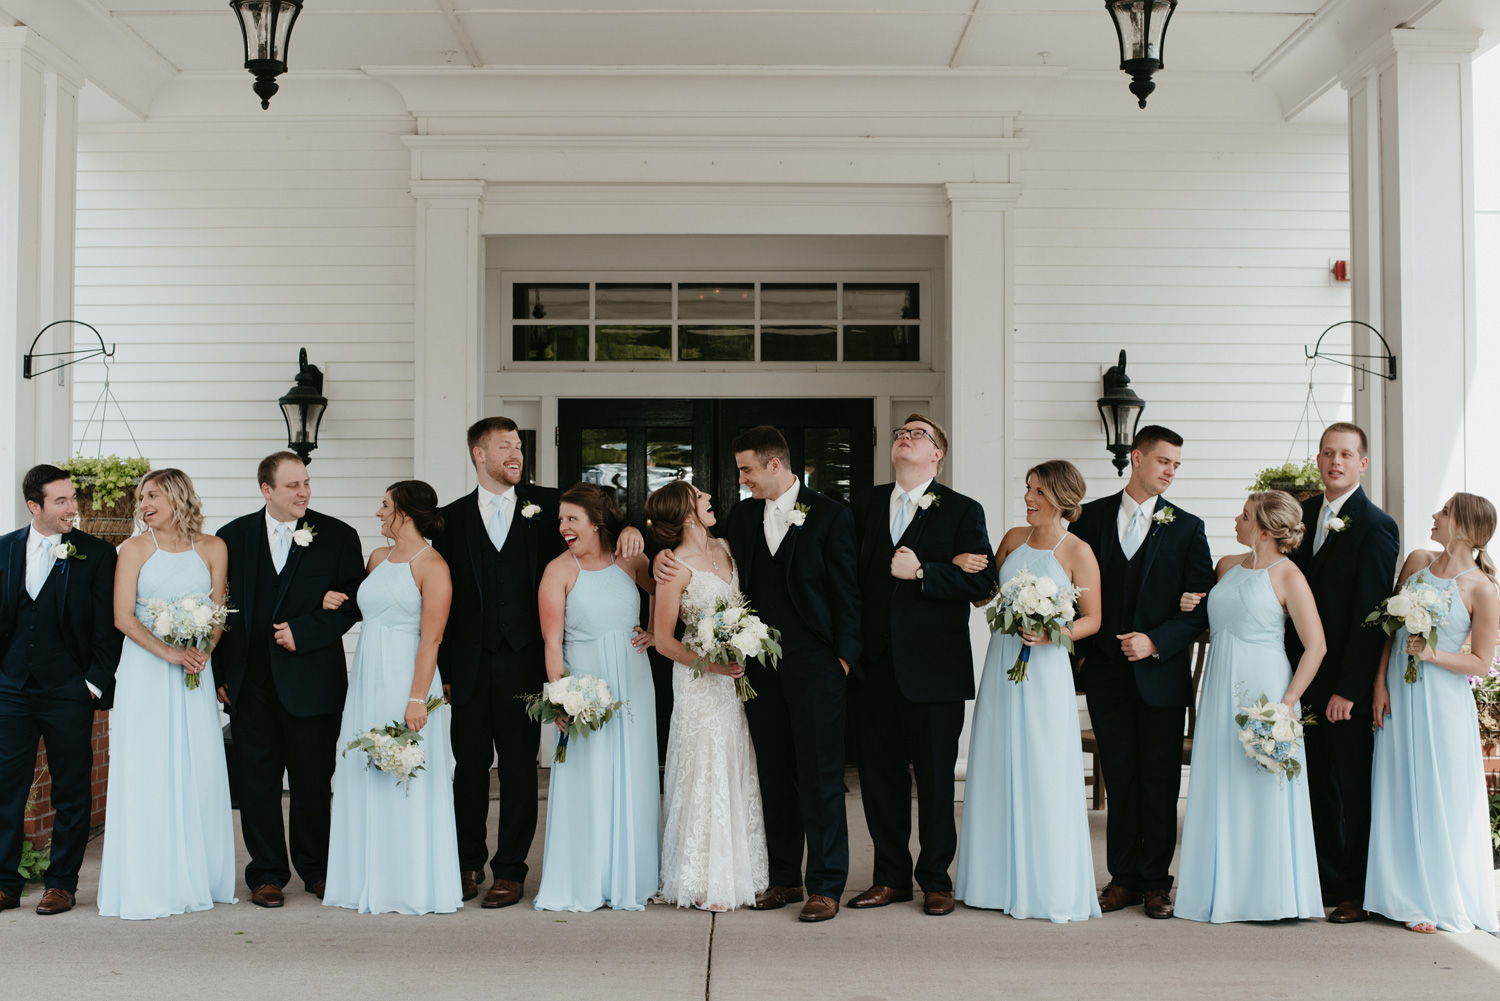 Bride, groom, and bridal party laughing together